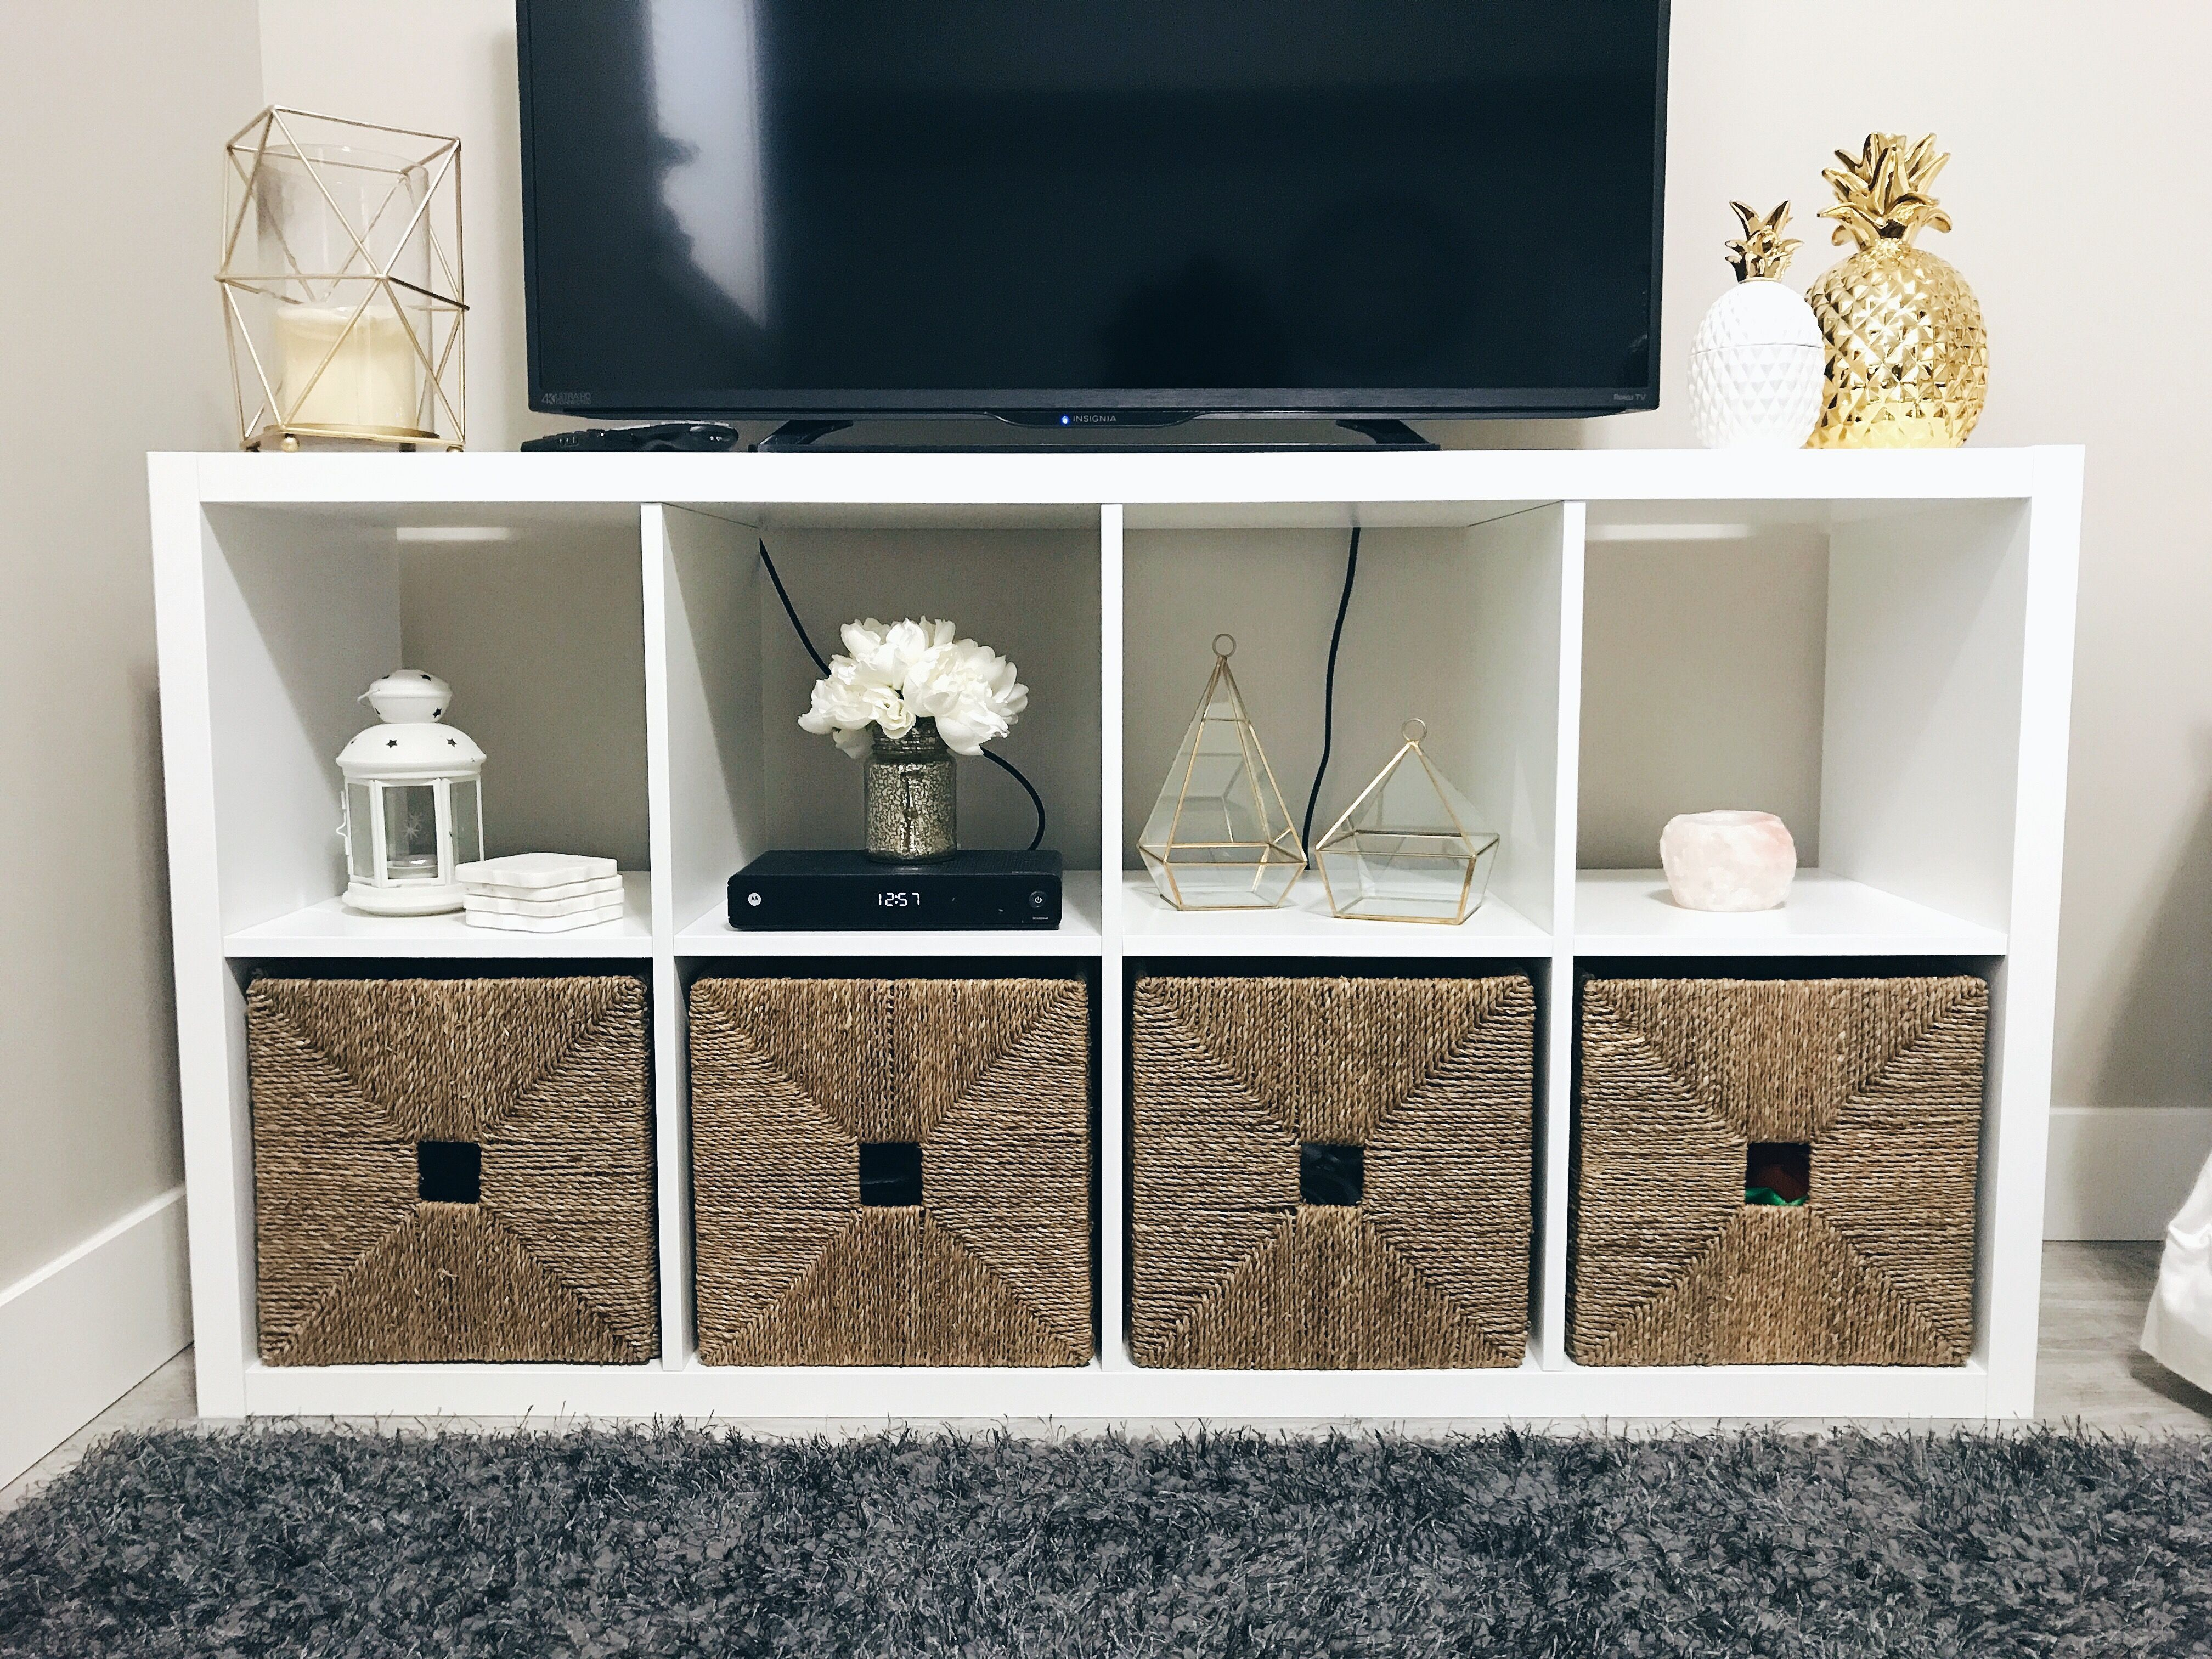 Do You Already Have Ideas For Your Weekend Project How About Replacing Your Old Tv Stand With A New One Bedroom Tv Stand Tv Stand Decor Living Room Tv Stand